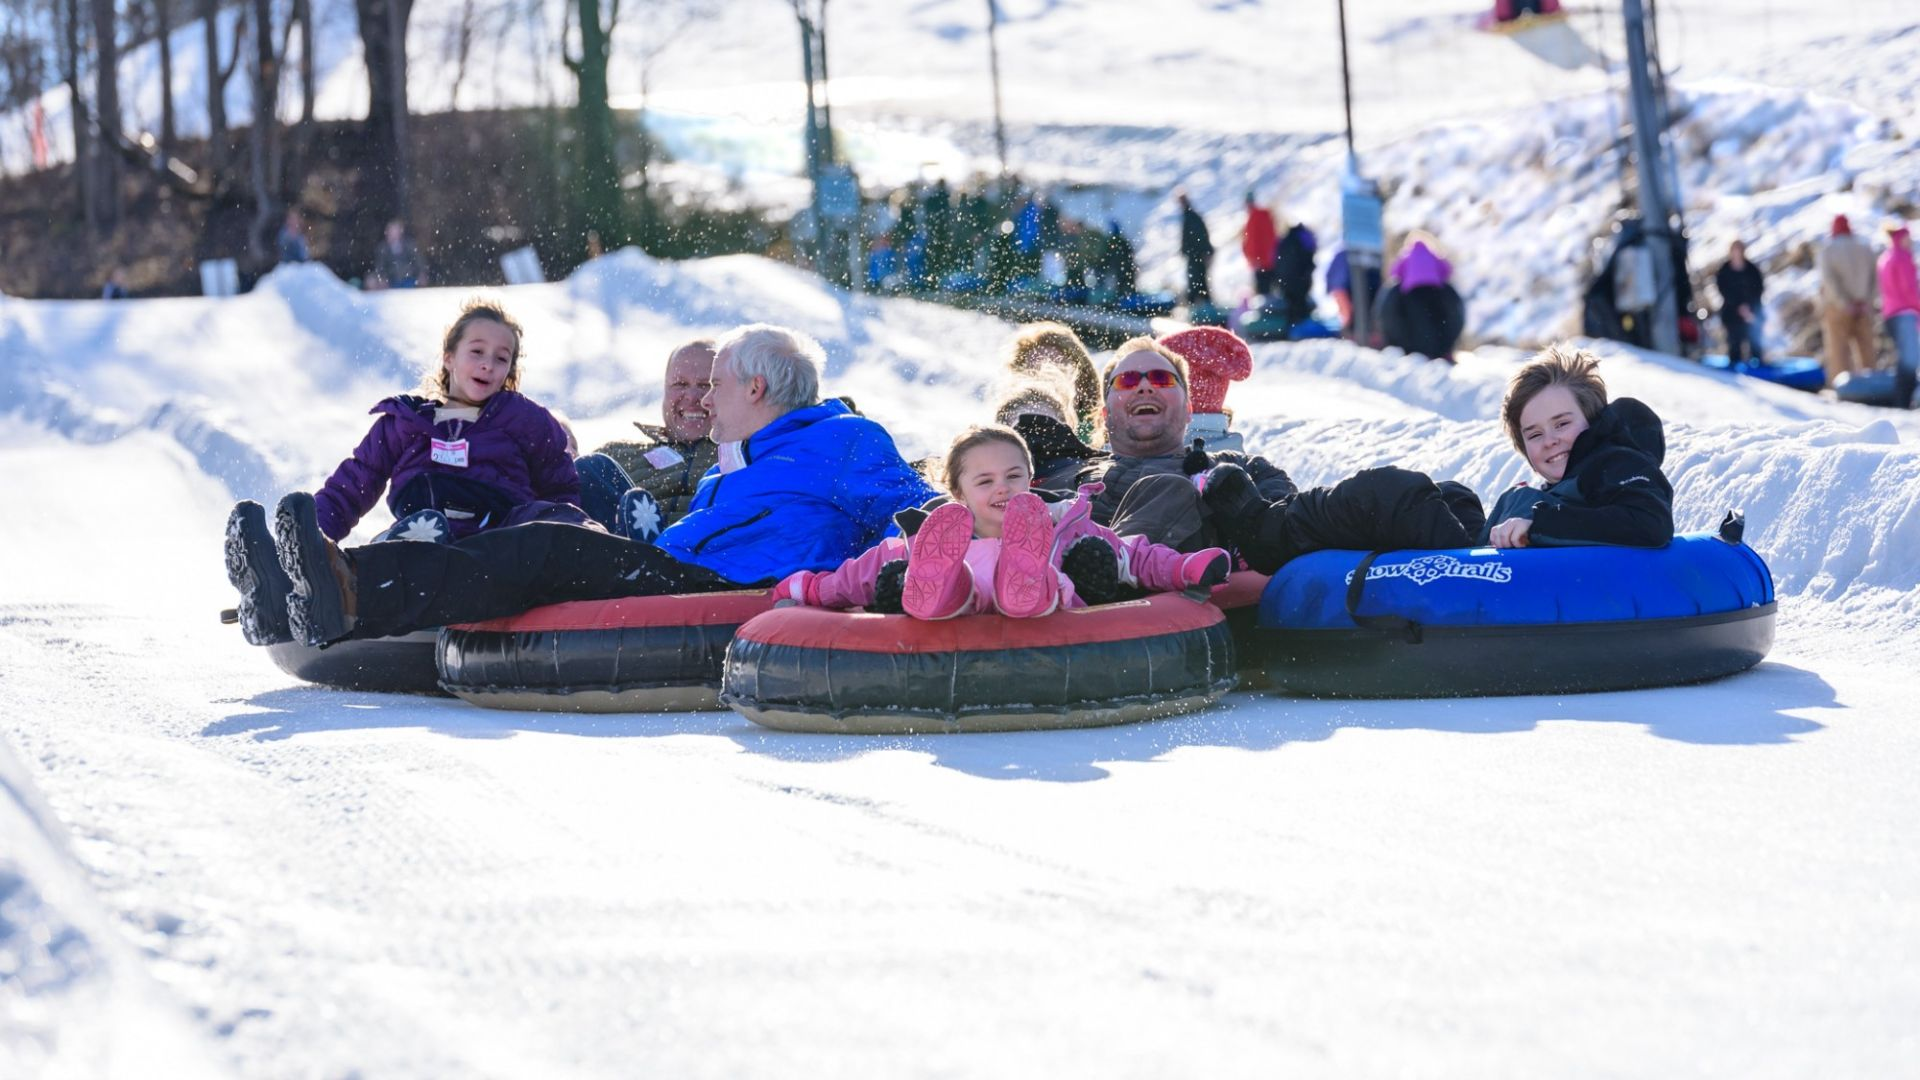 What A Fun Snow Tubing</br>Season - Thank You!